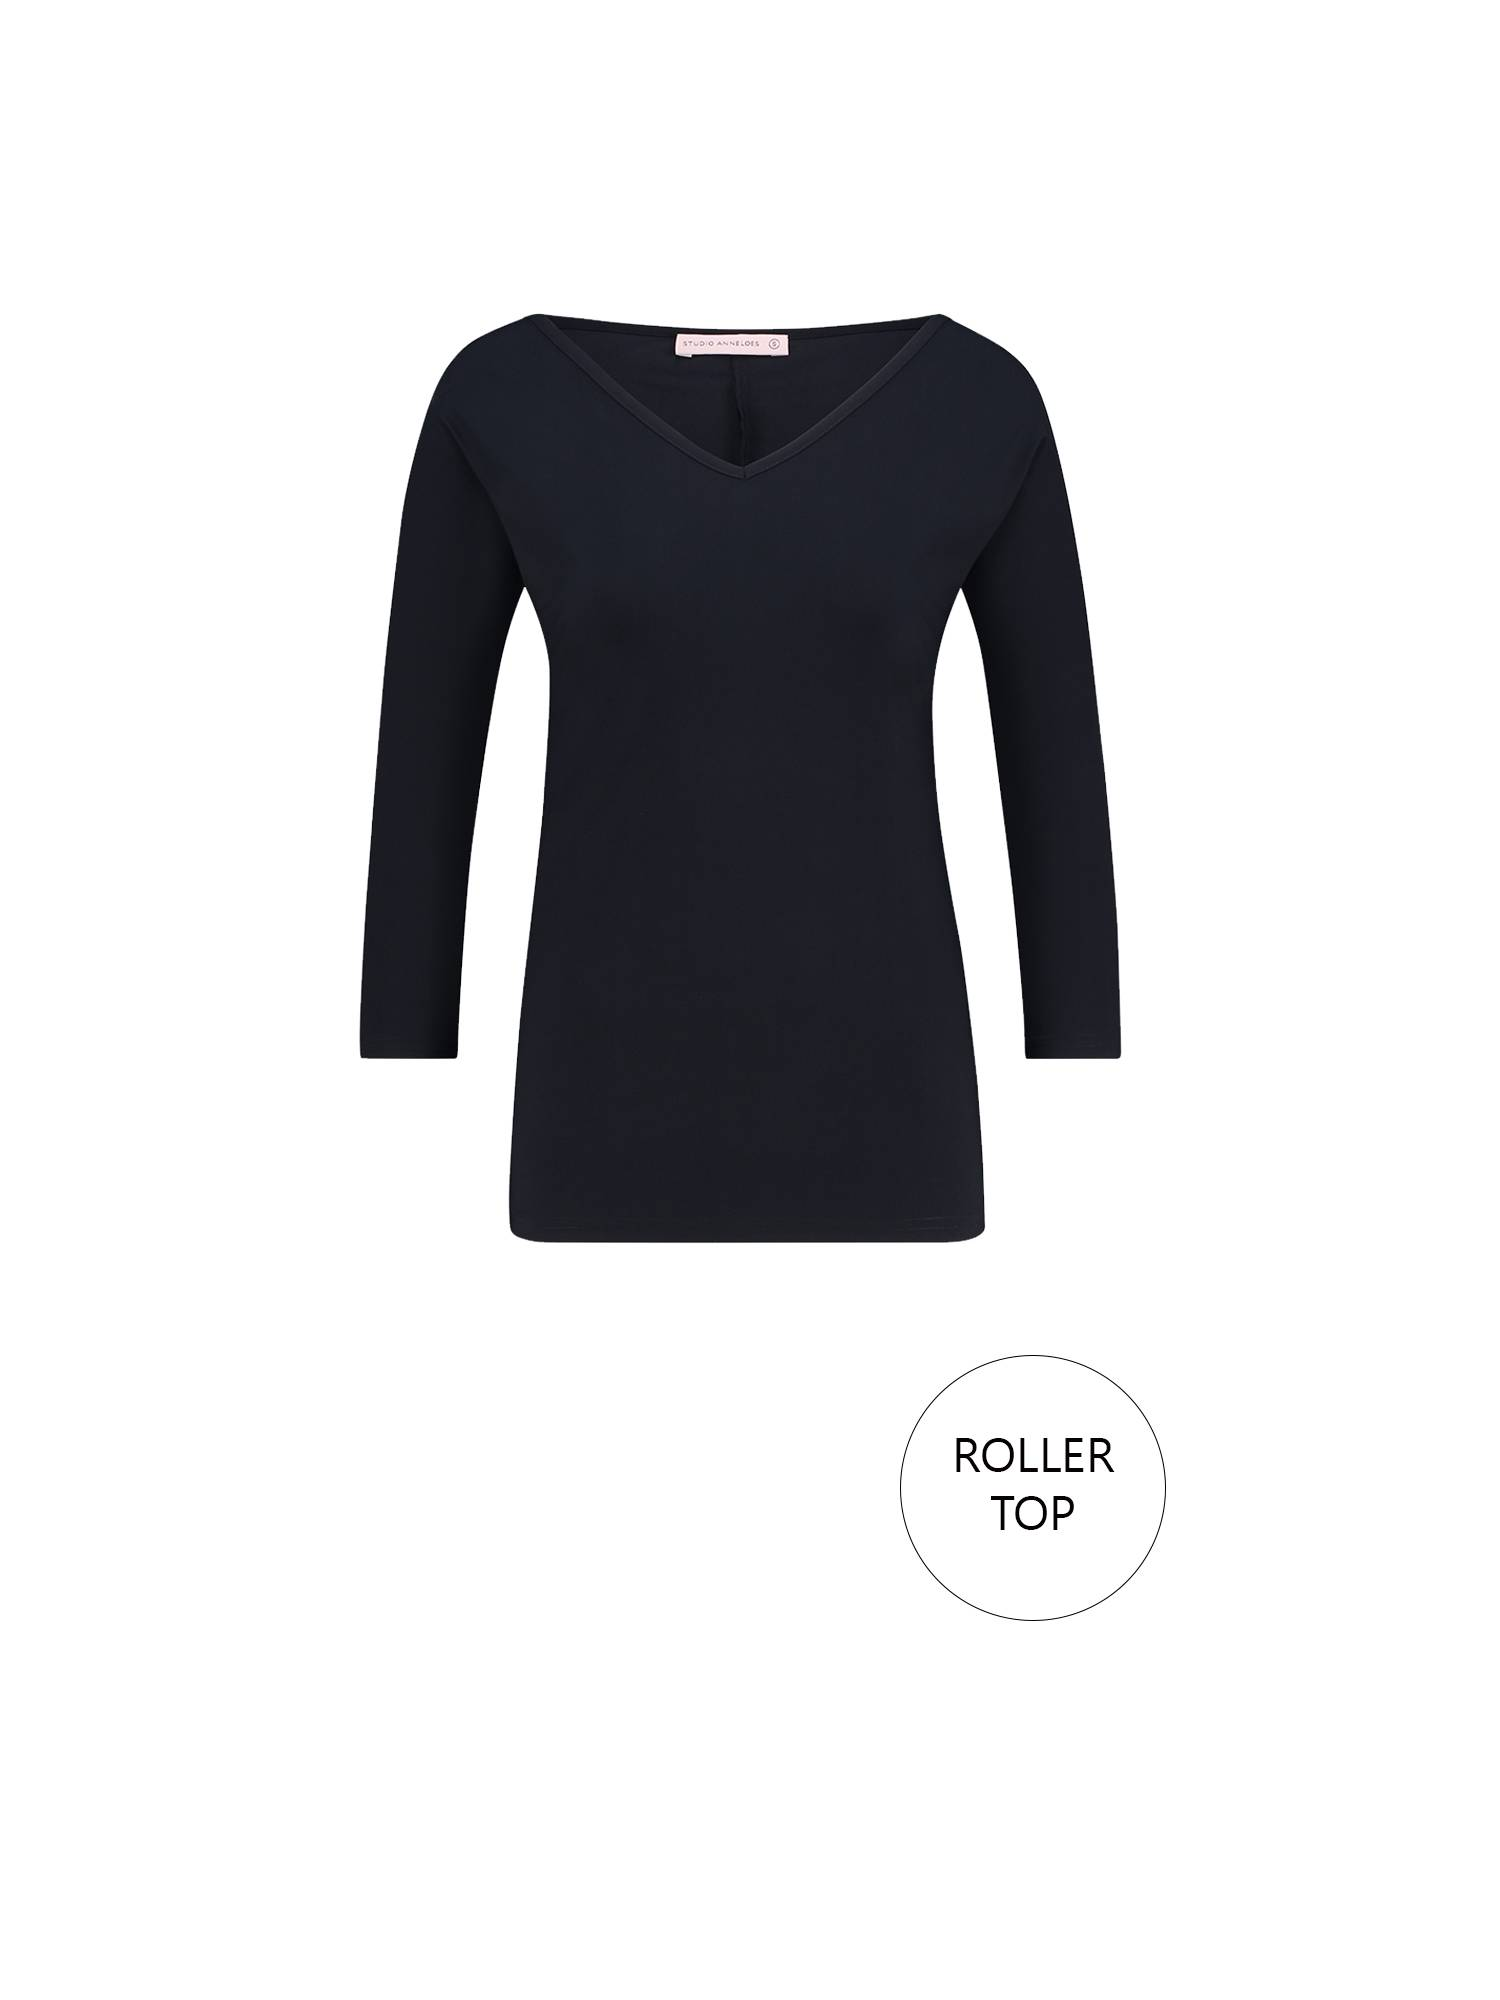 Studio Anneloes 92717 Roller top 6900 Dark Blue | Pico Women Fashion & More